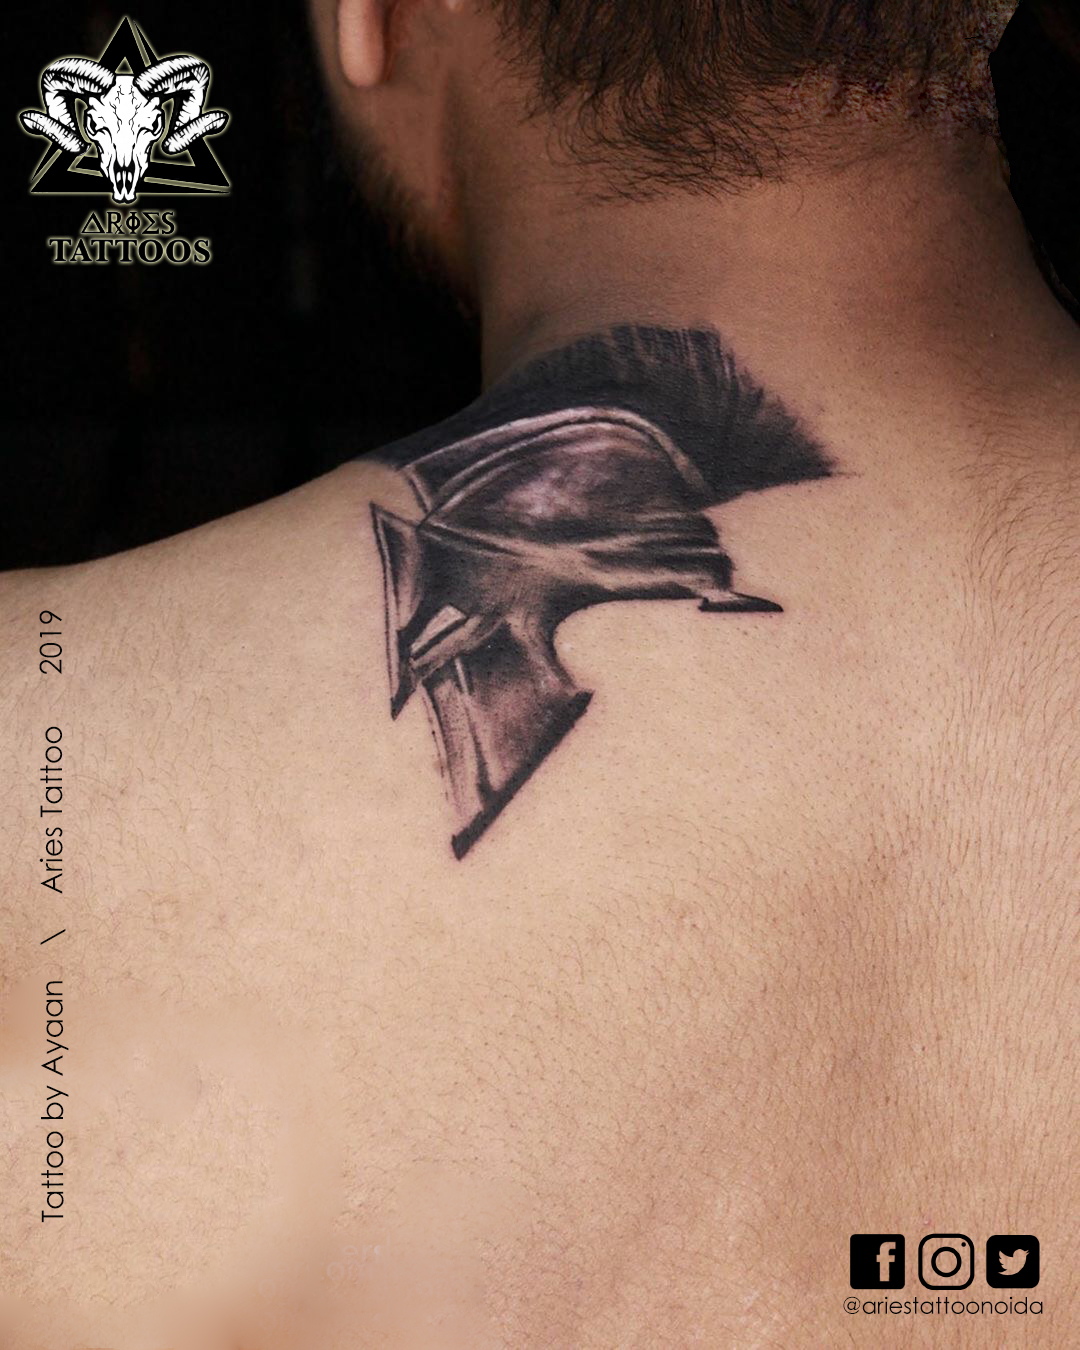 Warrior Head Tattoo By ayaan | |Aries Tattoo Noida | Tattoo Shop and Studio In Noida